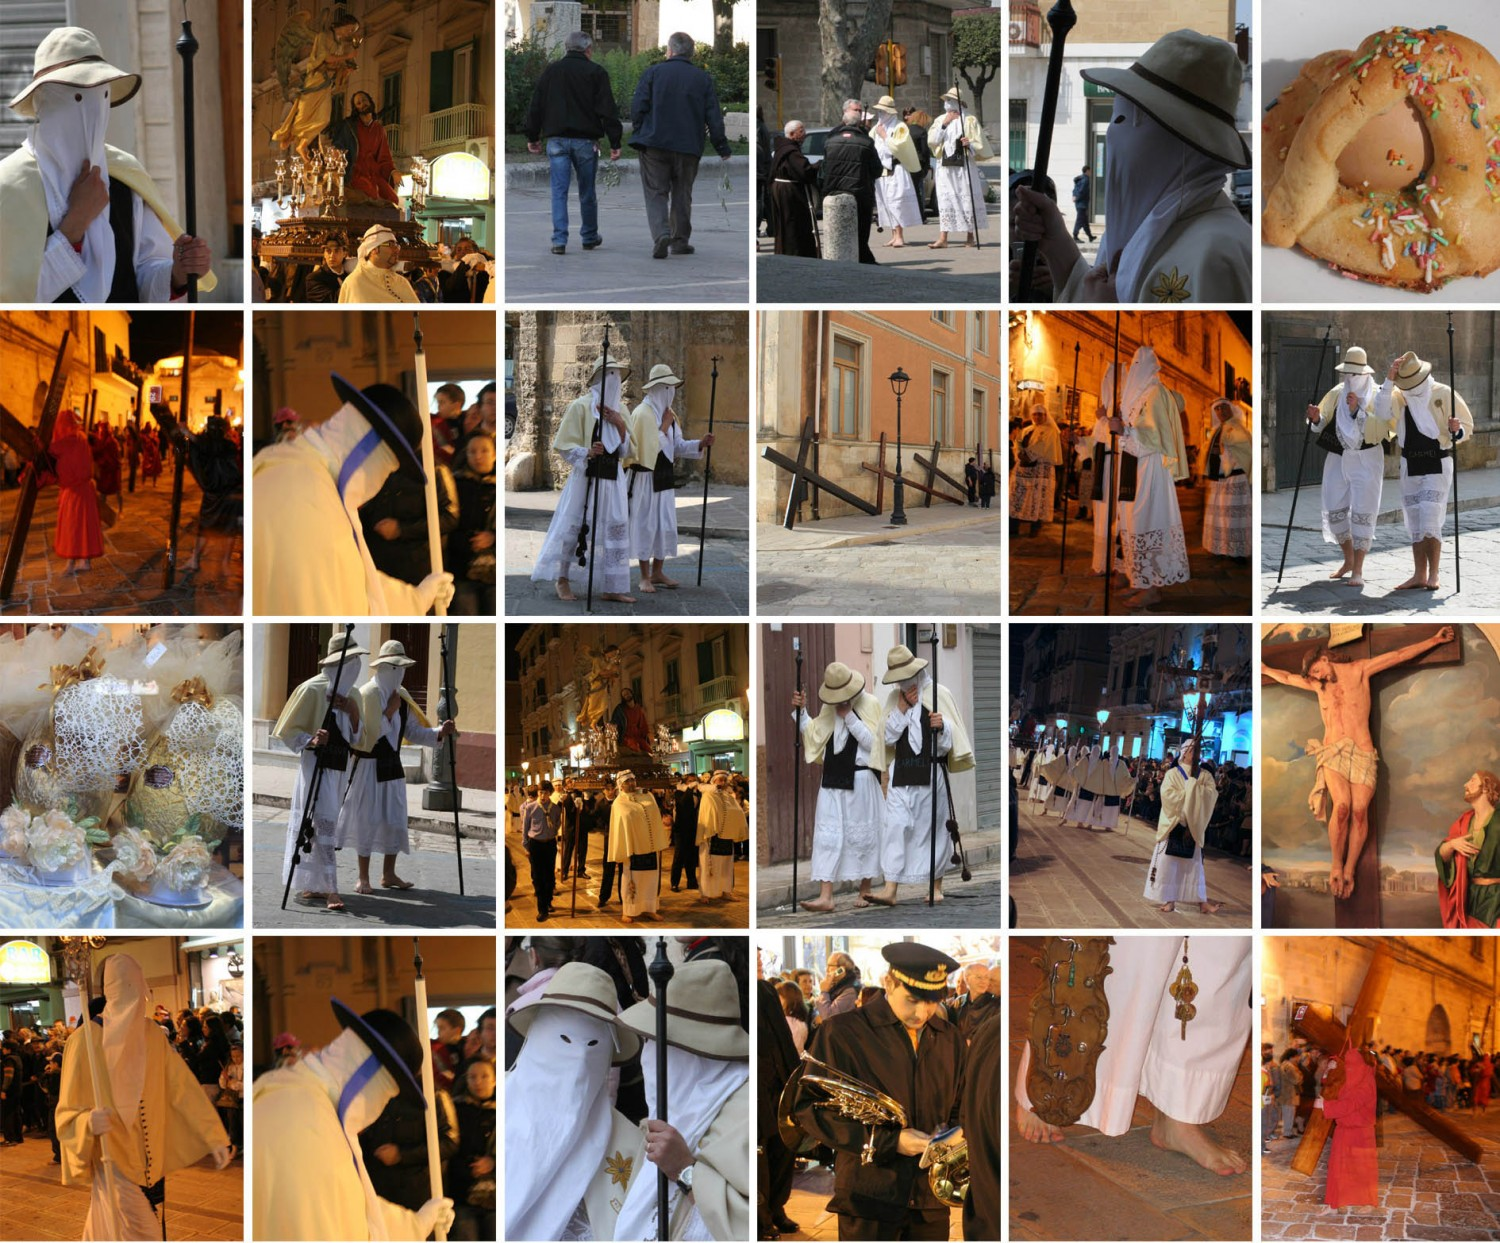 Pictures of Easter in Italy